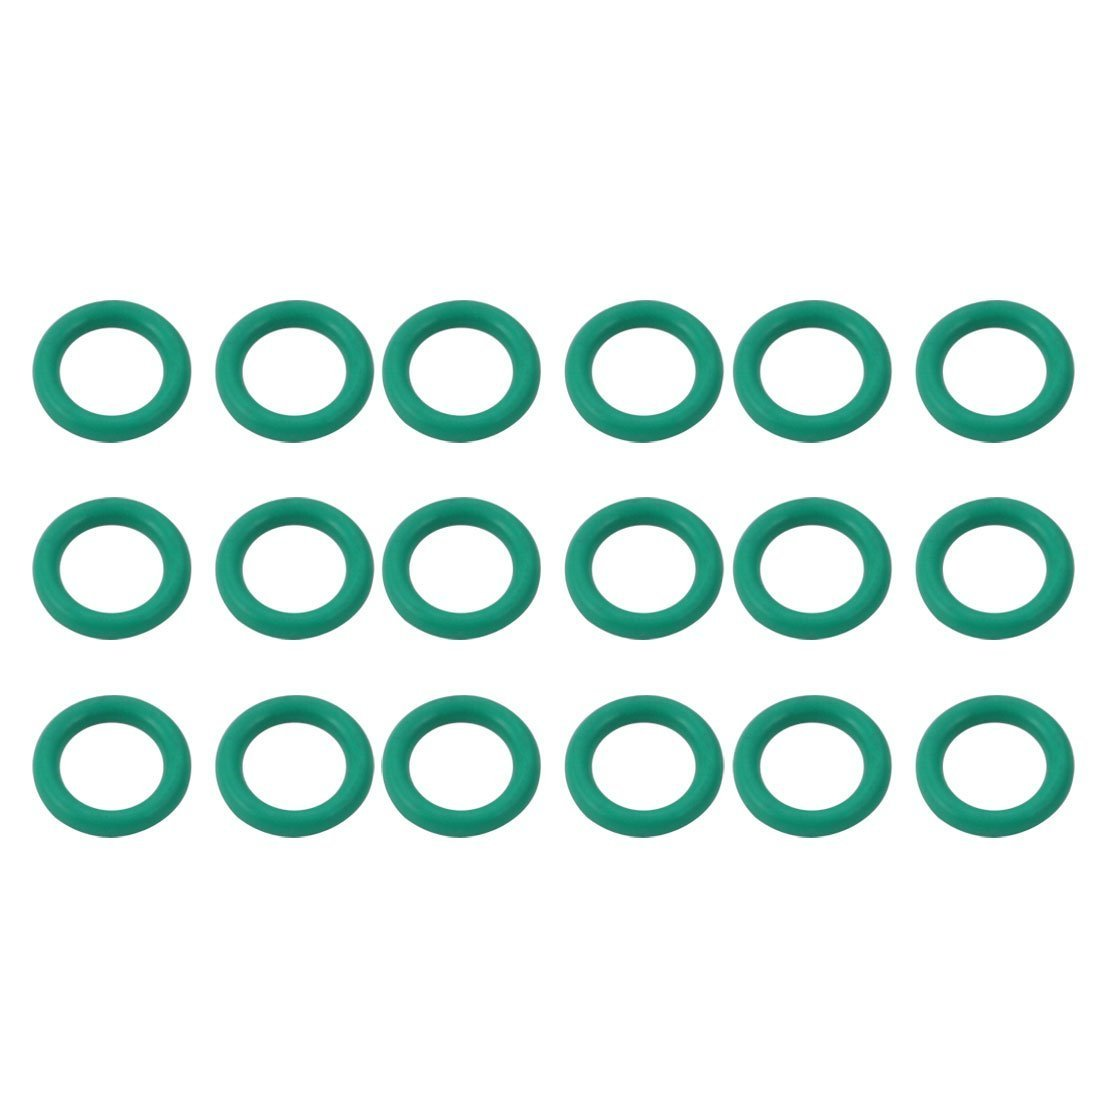 Portal Cool 18pcs Green 5mm Outer Dia 1mm Thickness Sealing Ring O-Shape Rubber Grommet